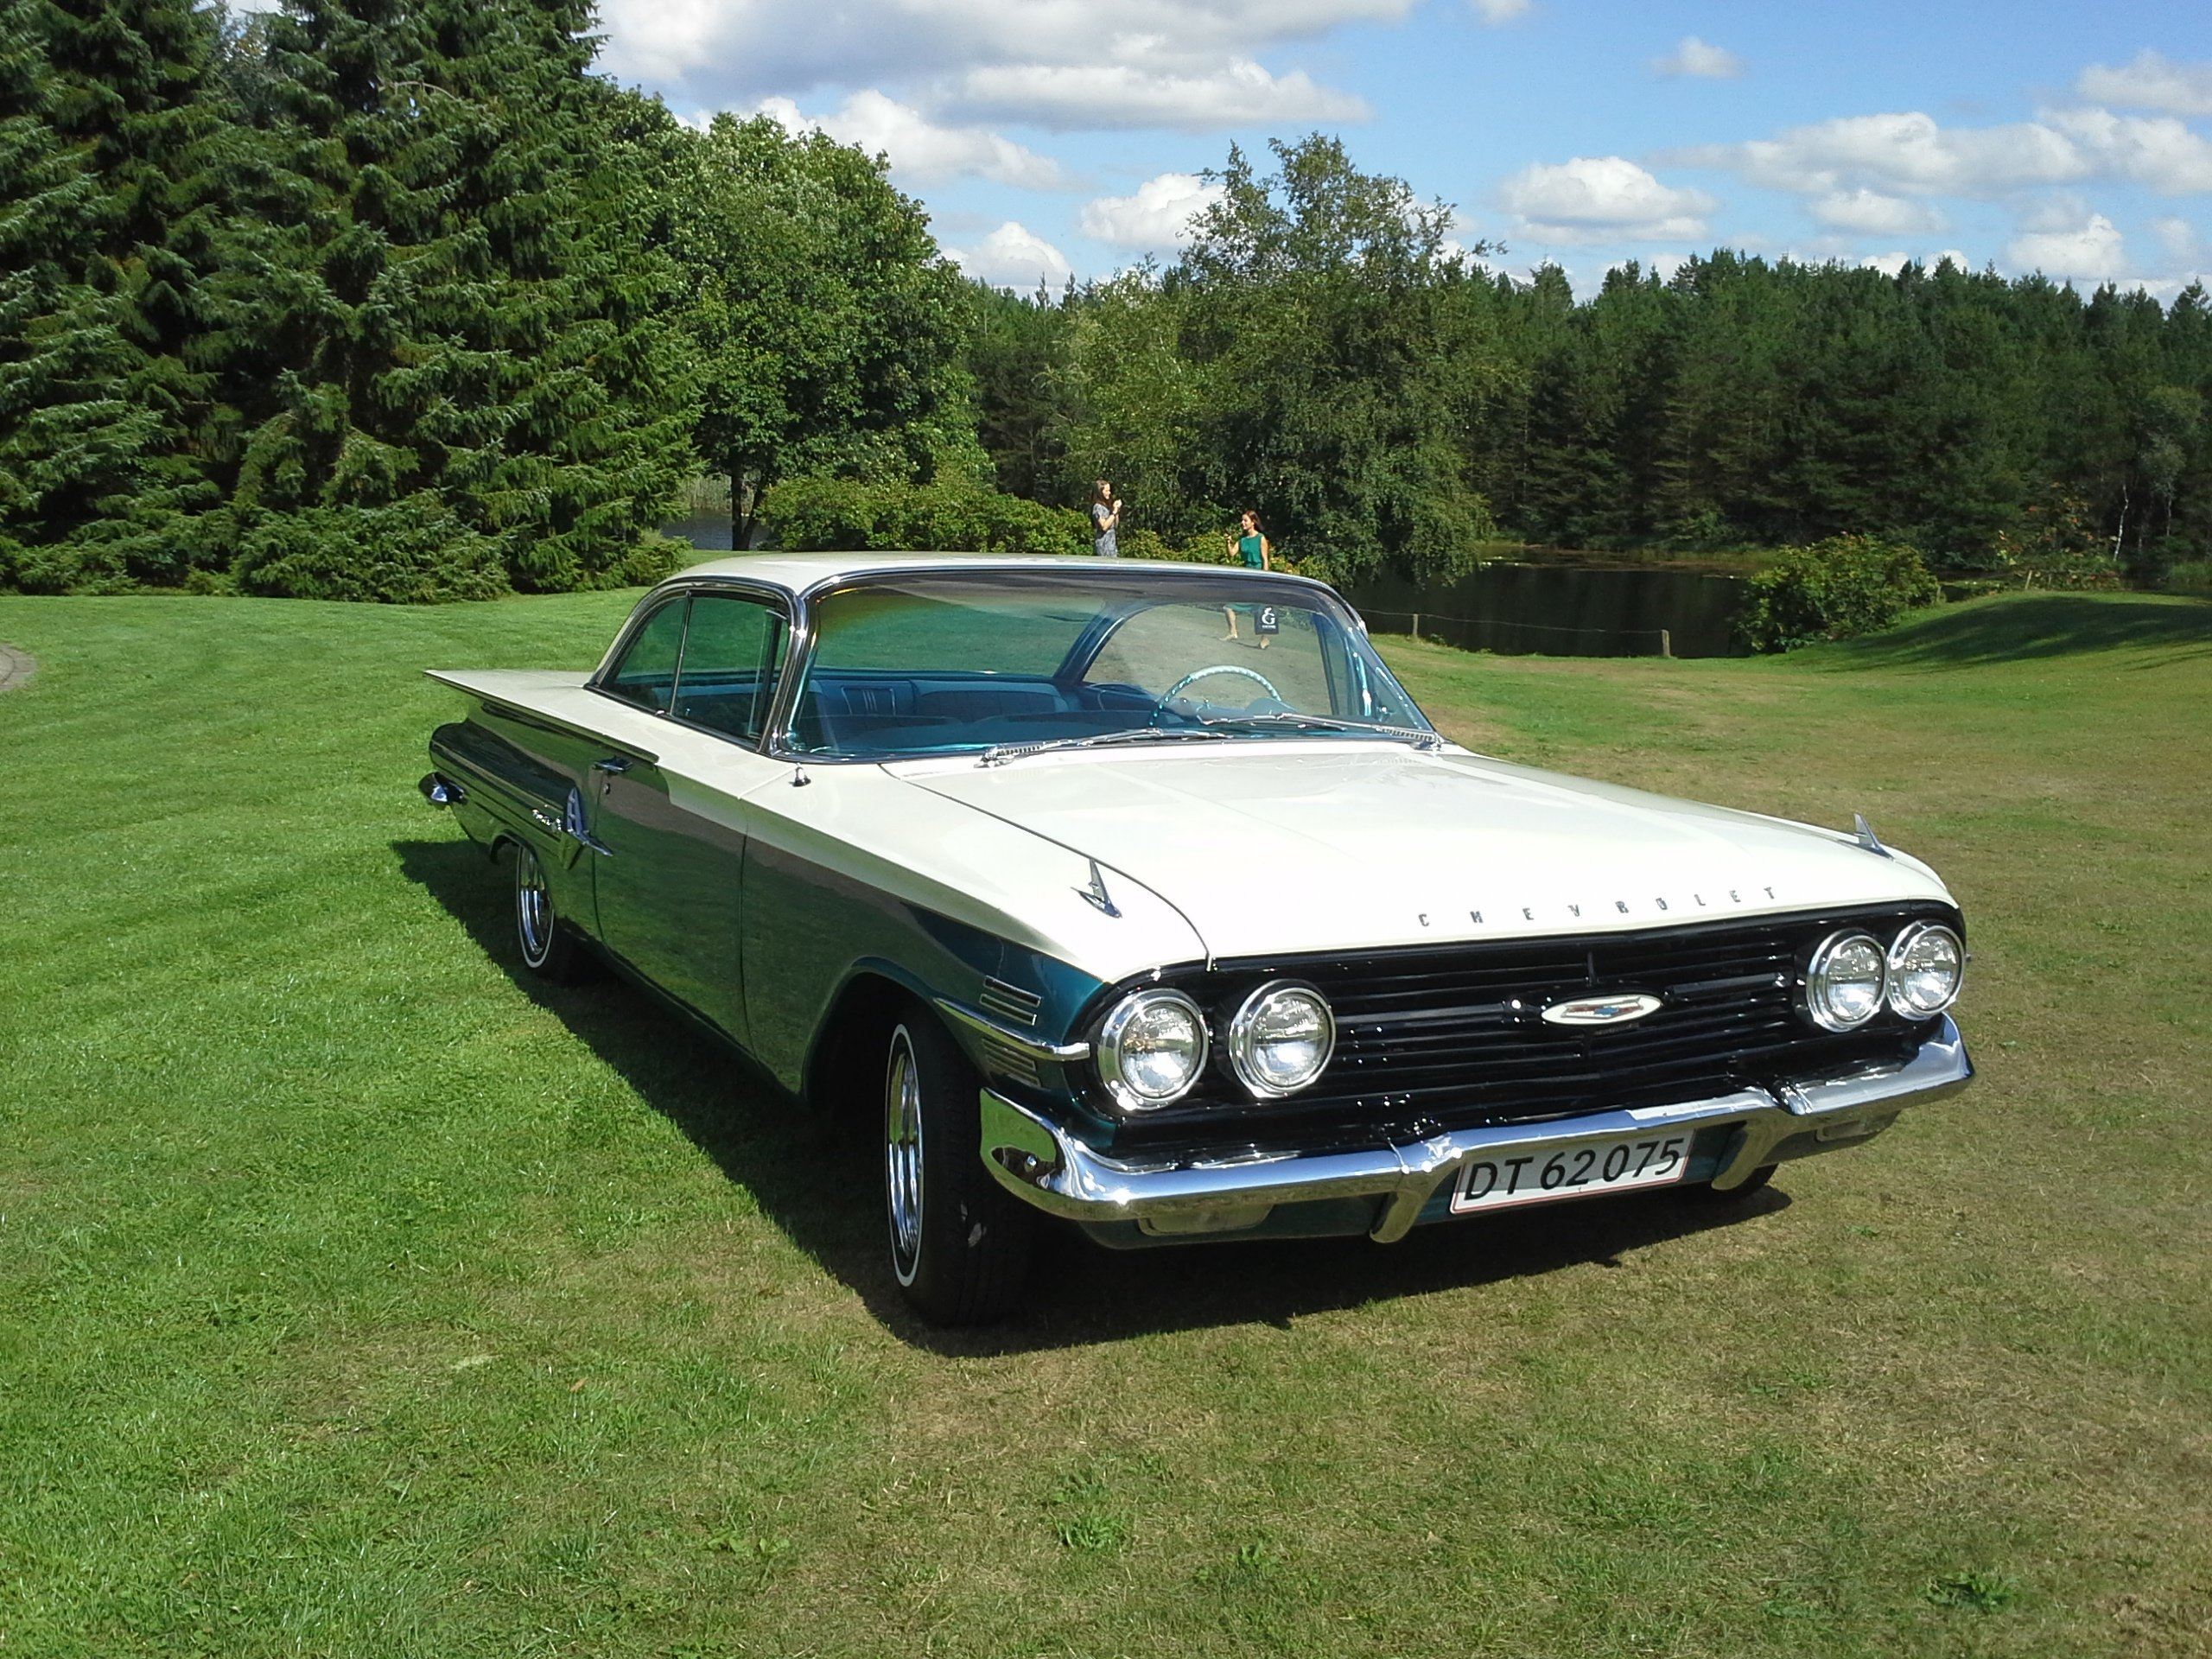 1960 Chevrolet Impala Sports Coupe